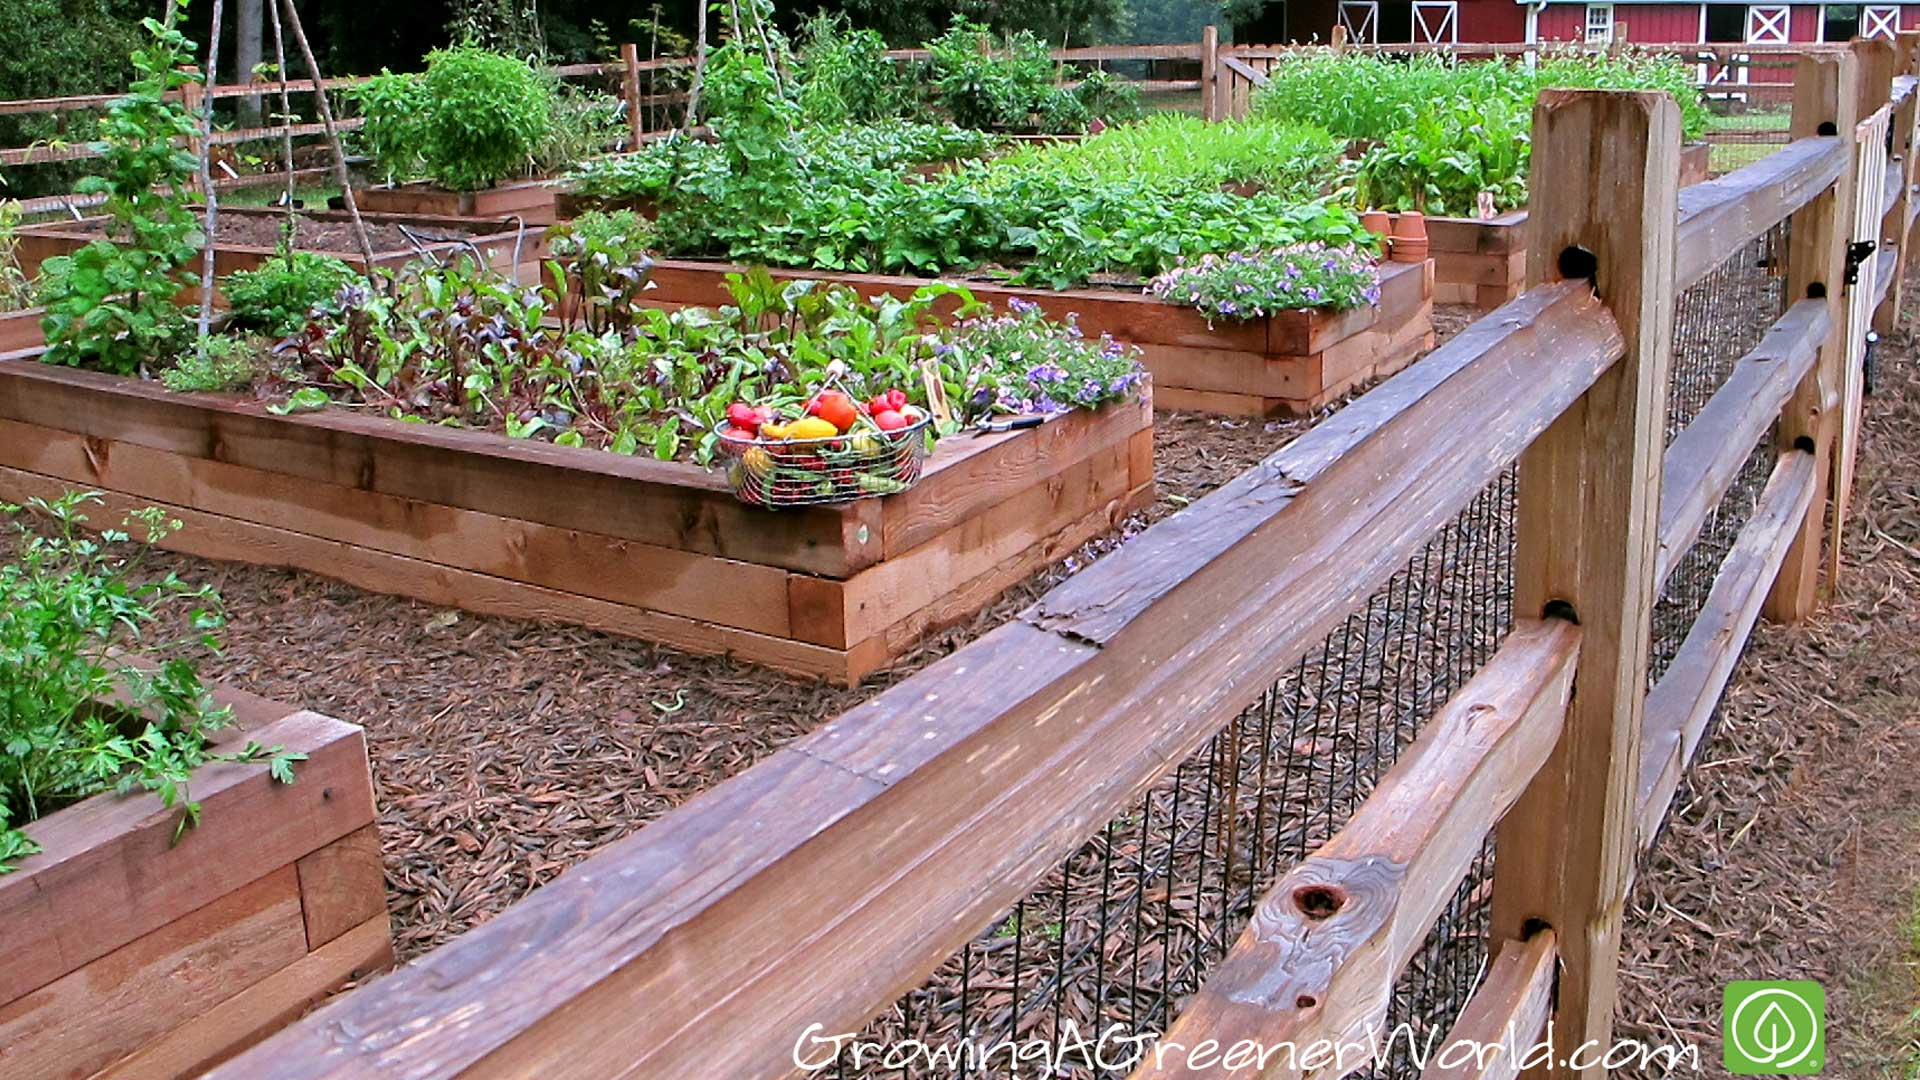 Vegetable & Fruit Gardening Articles